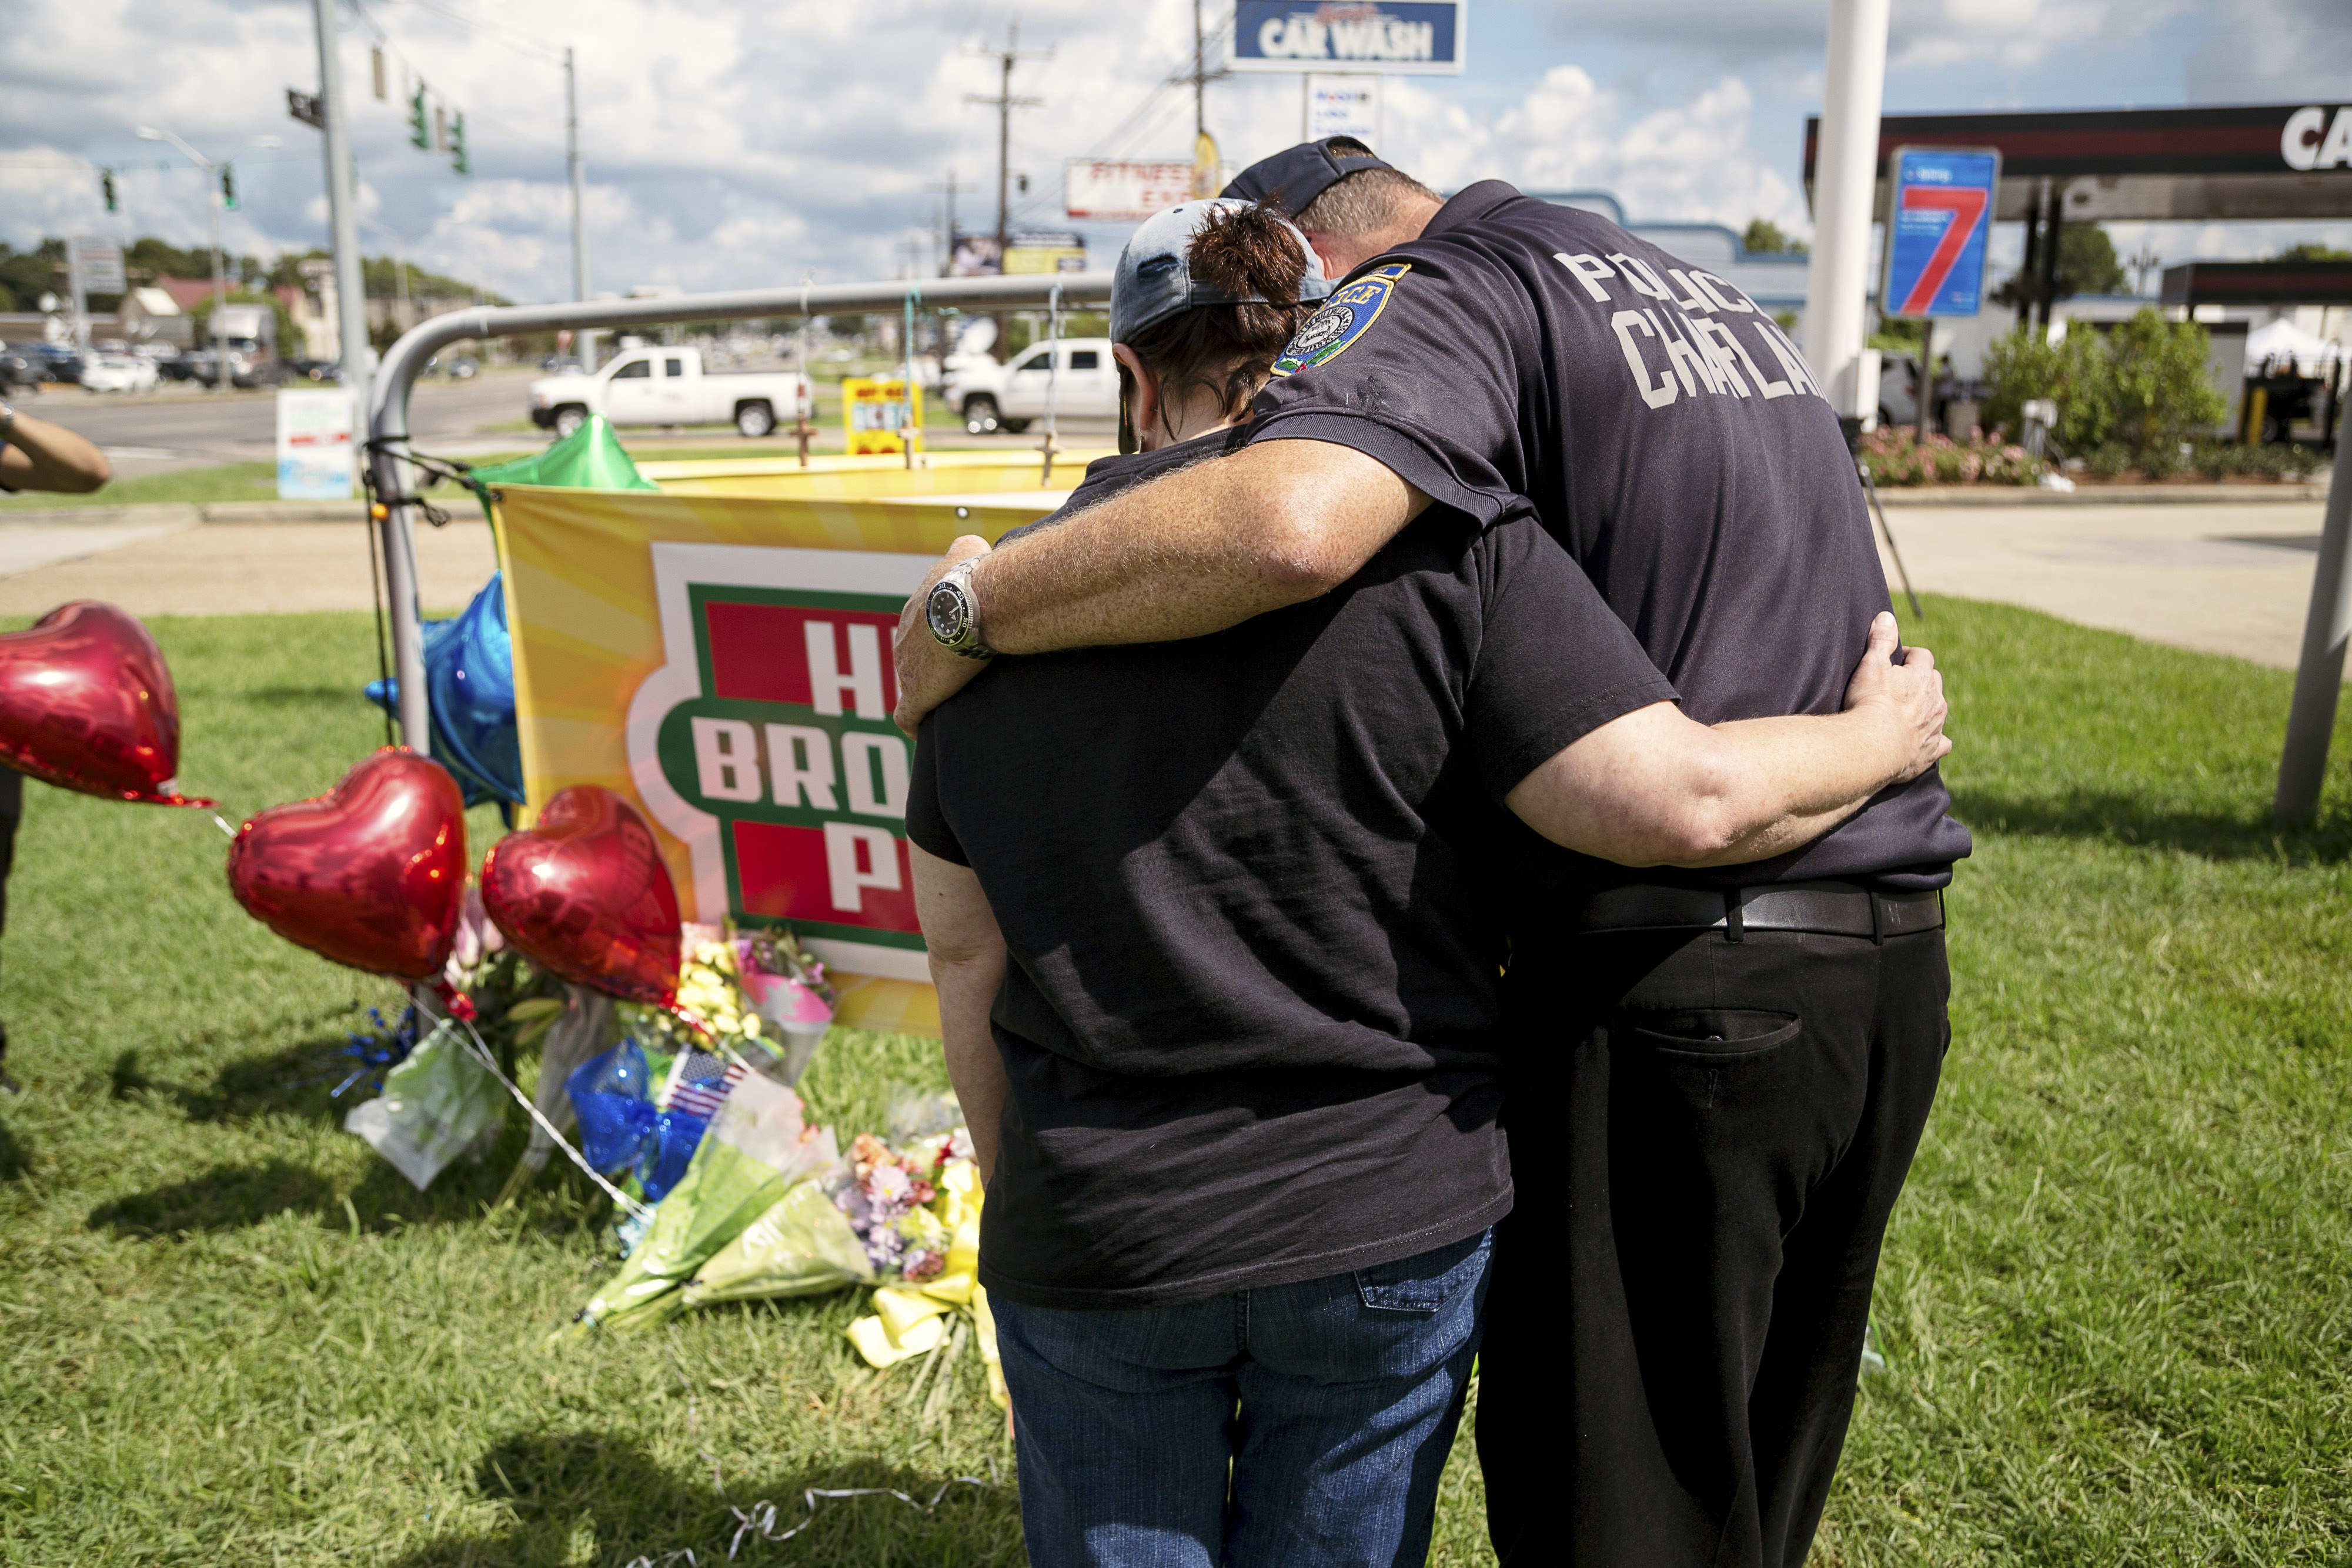 Robert Ossler, a police and fire chaplain, embraces LaNette Drury at a makeshift memorial at the site in Baton Rouge where three police officers were shot to death.